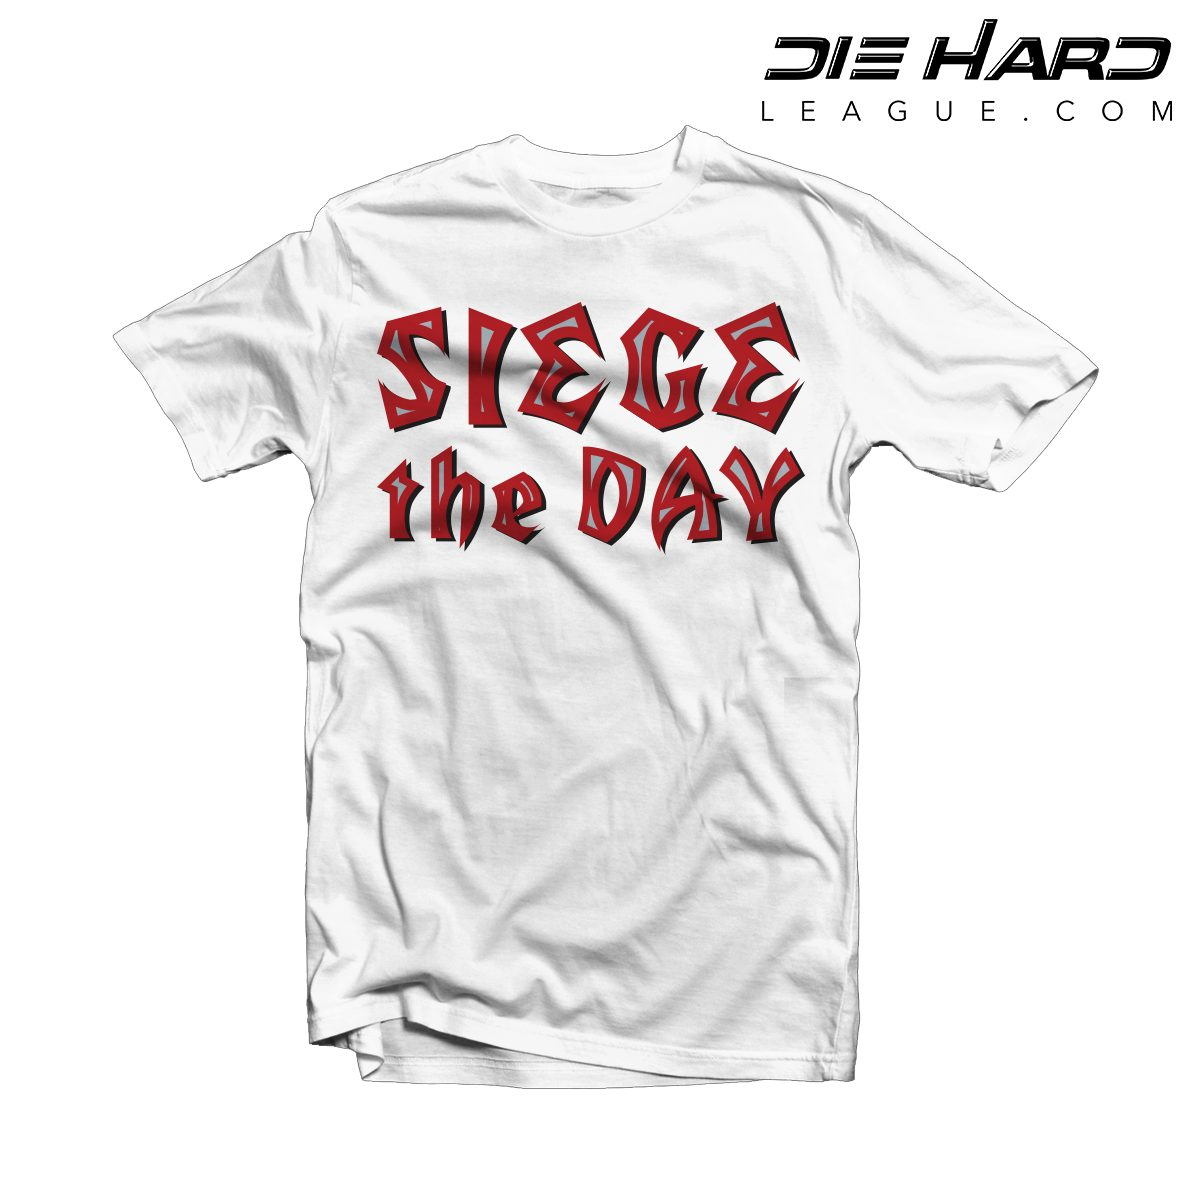 Nice Tampa Bay Buccaneers T Shirt Siege the Day White Tee  free shipping